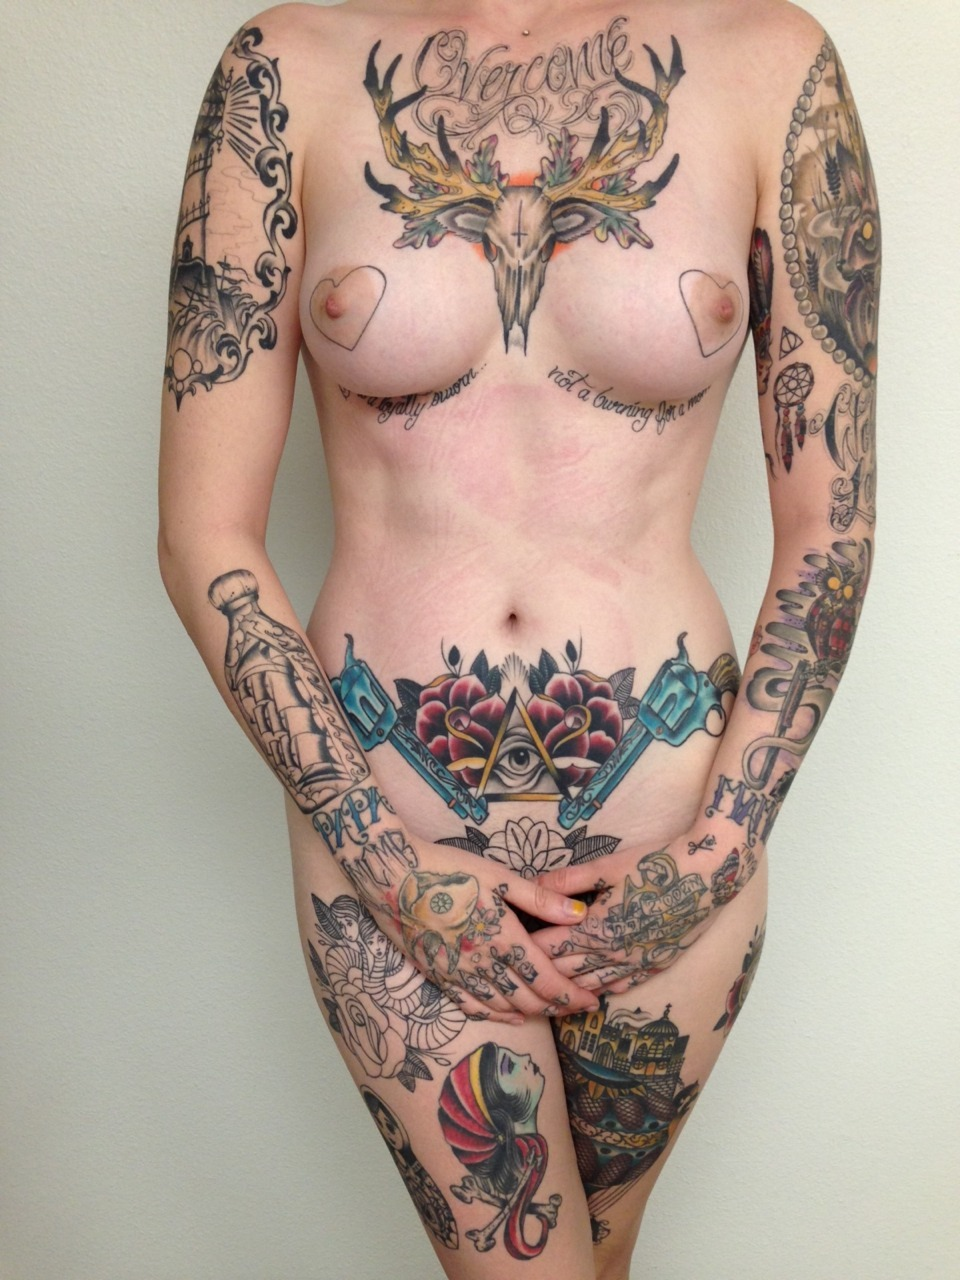 Sexy people with tattoos and cute animals blog!